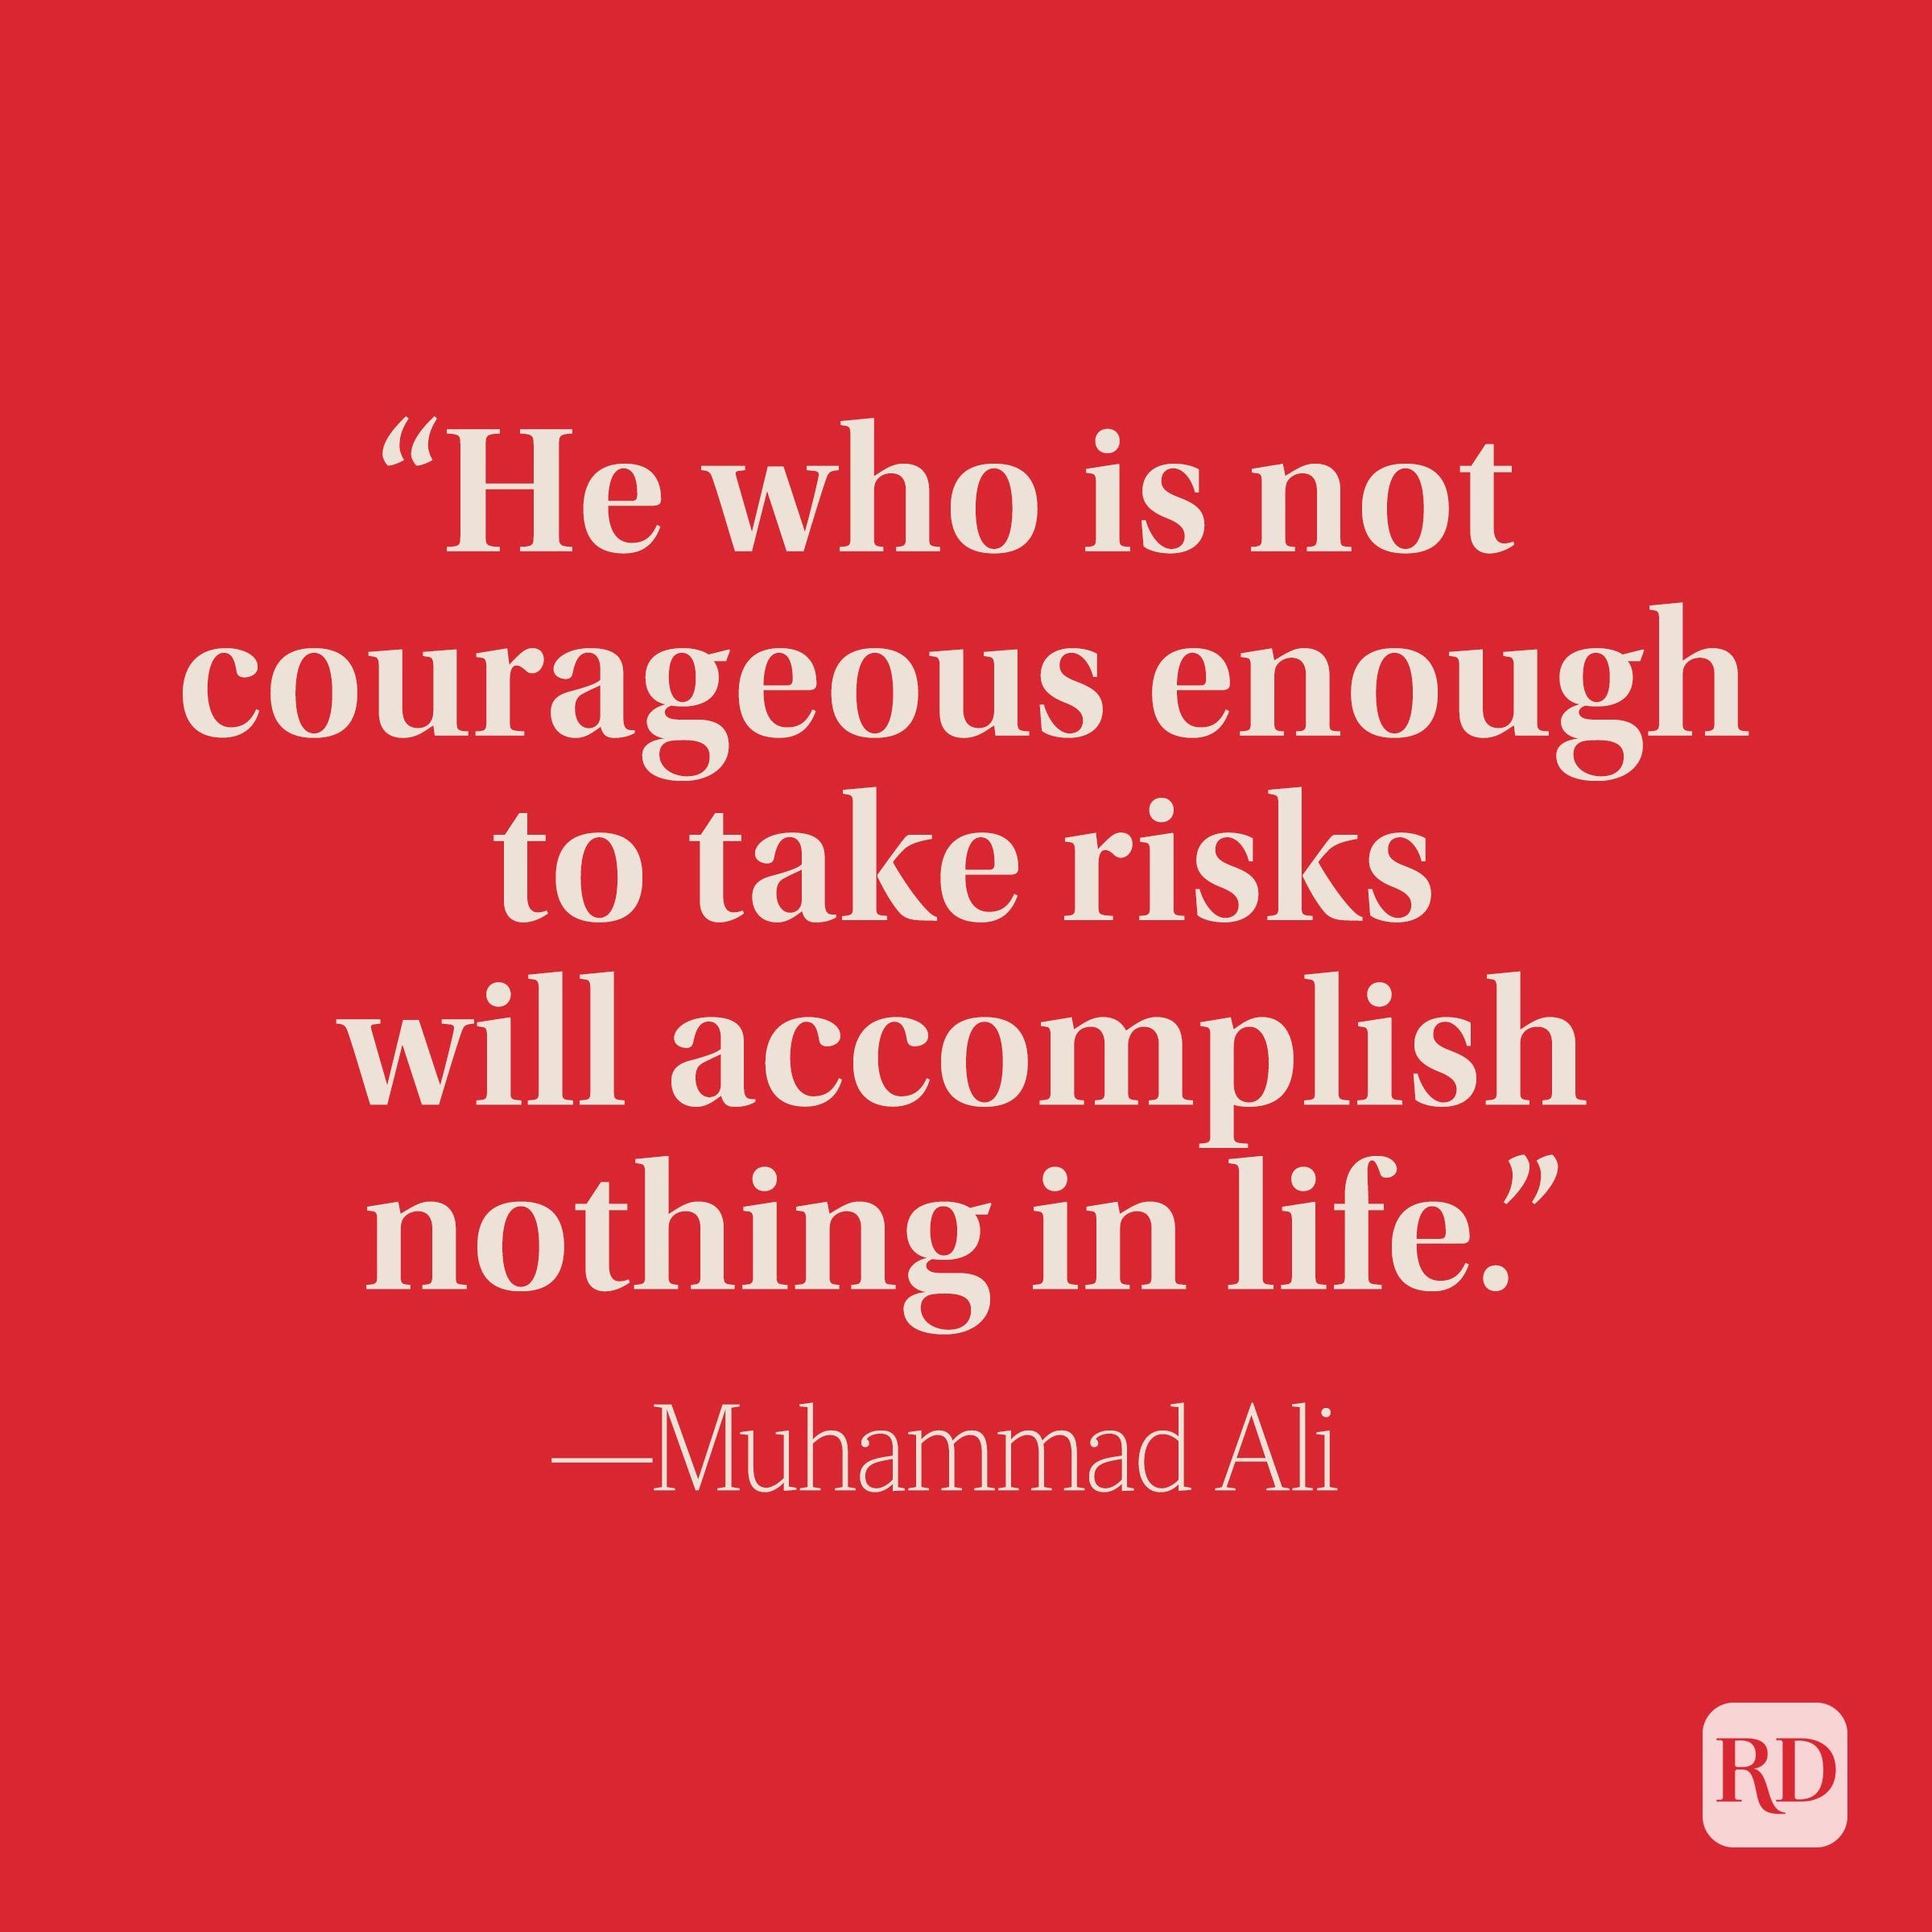 """""""He who is not courageous enough to take risks will accomplish nothing in life."""" —Muhammad Ali"""